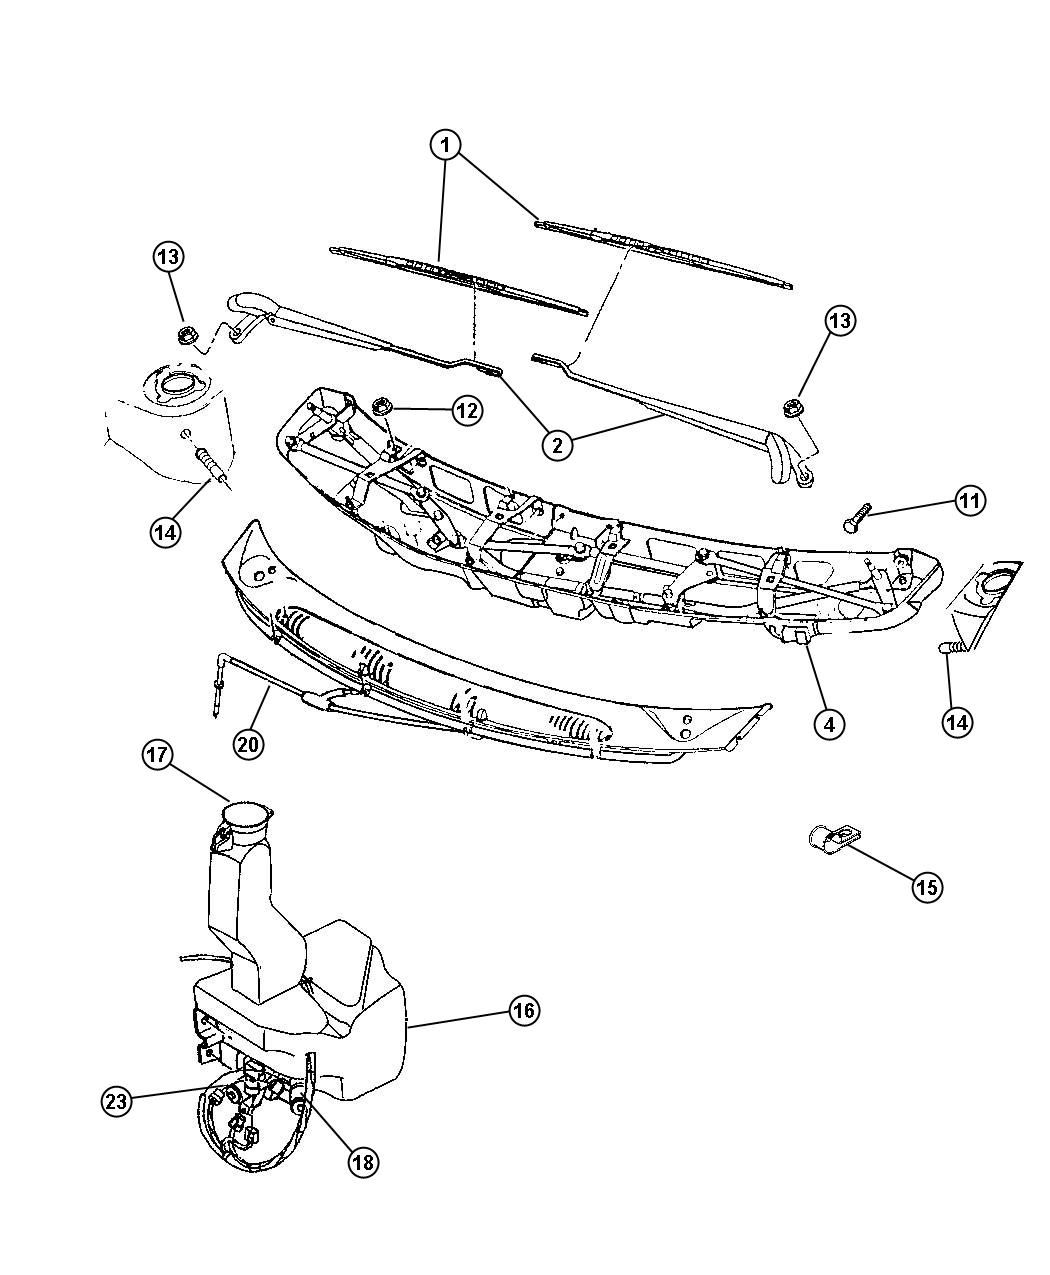 Belt Diagram 2005 Acura Tsx Electrical Wiring Diagrams Engine Rsx Trusted U2022 2007 Tlx